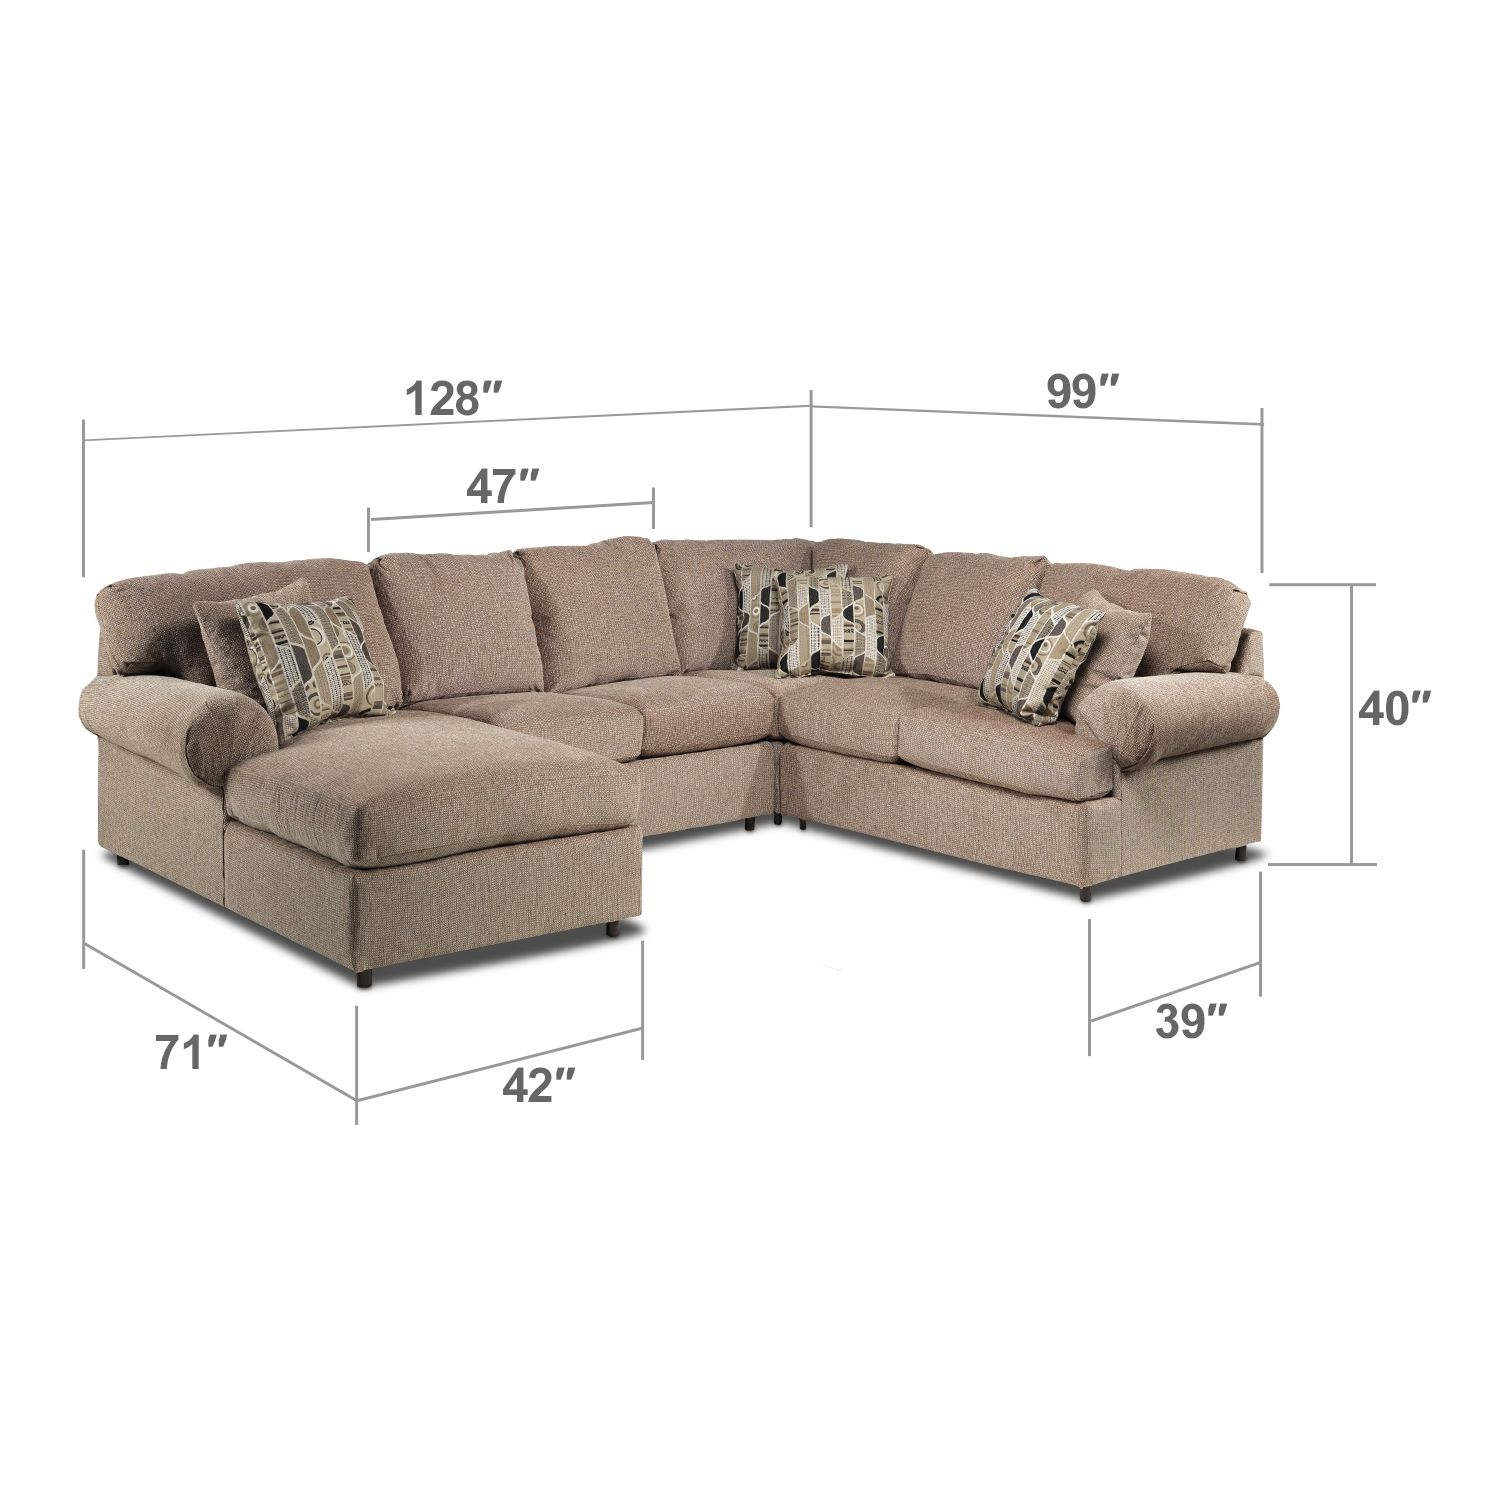 Living Room Furniture Trudy II 4 Pc. Sectional